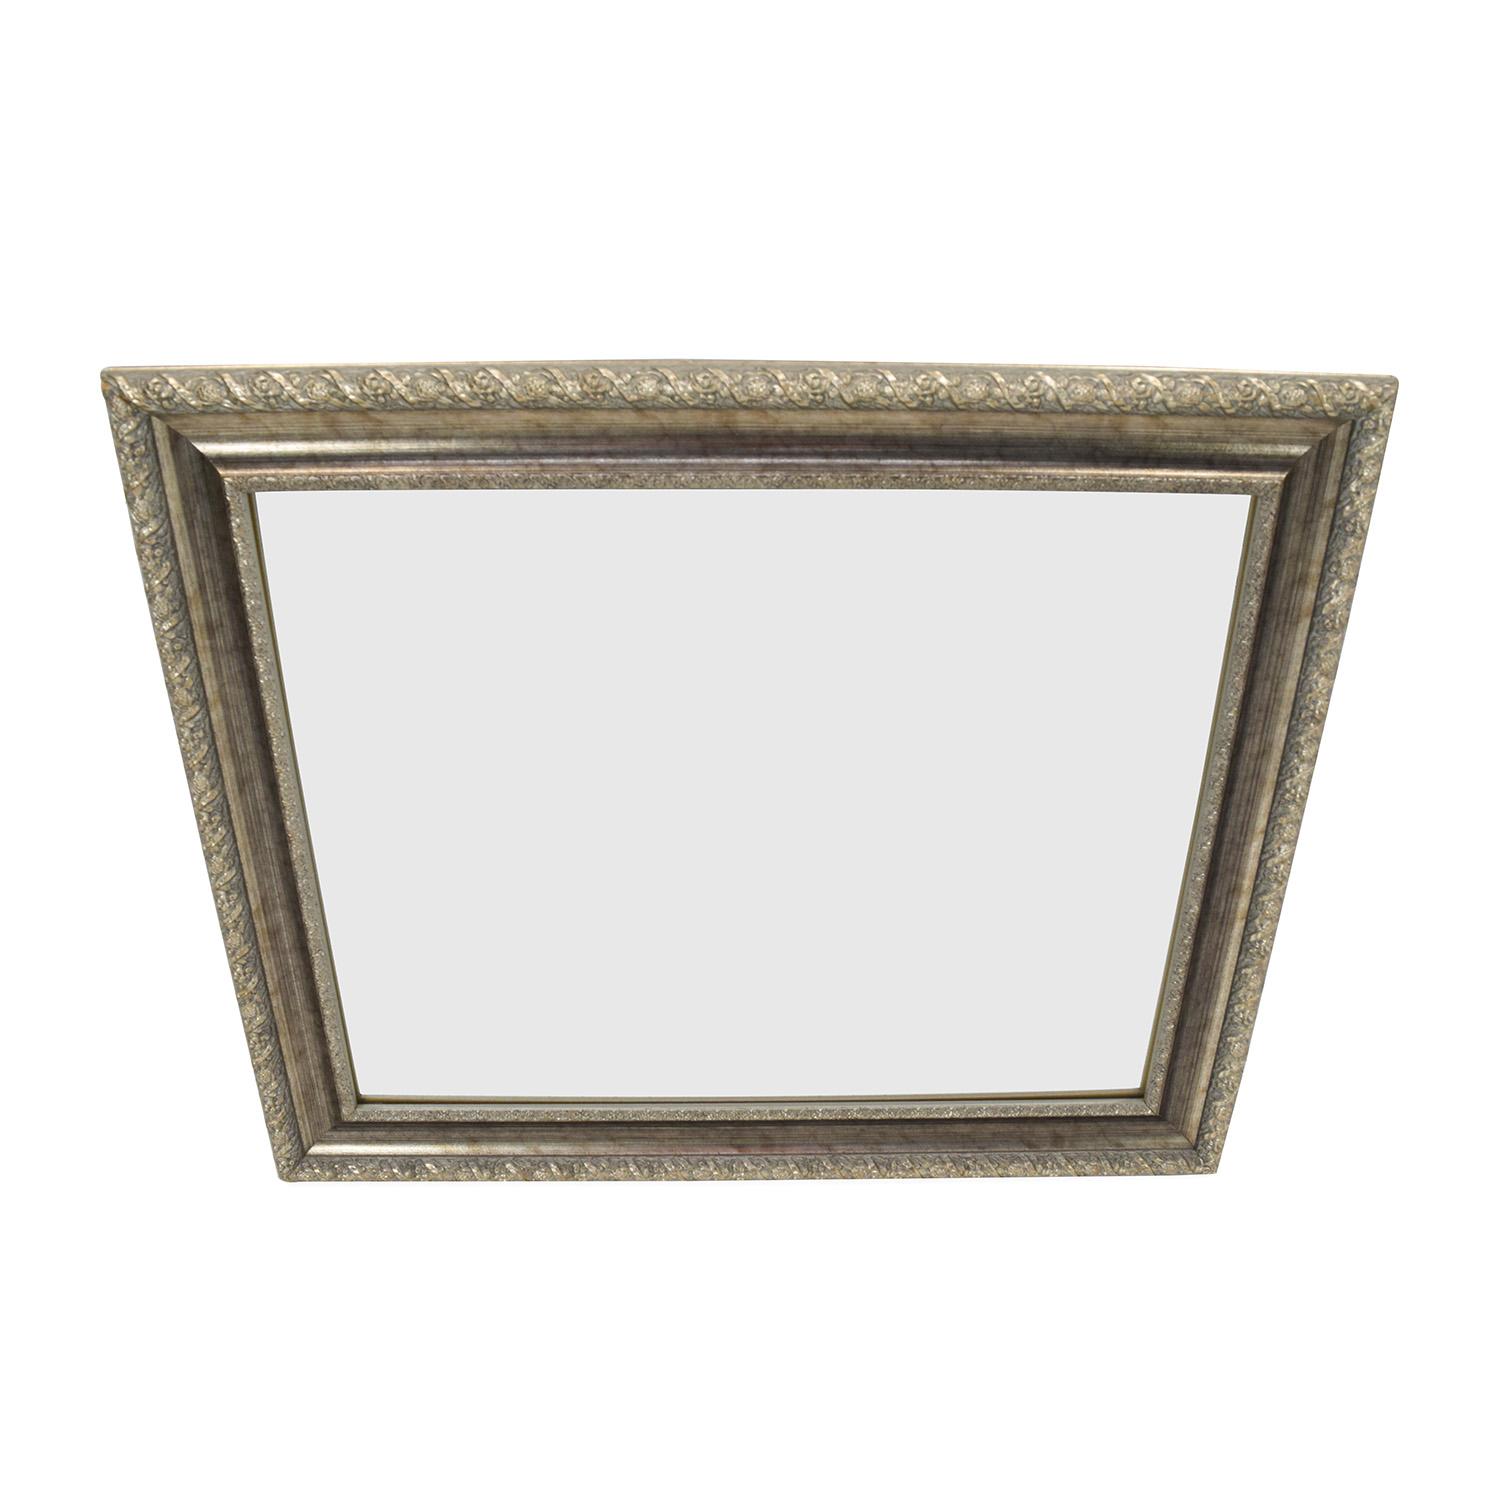 Gold Frame Mirror used